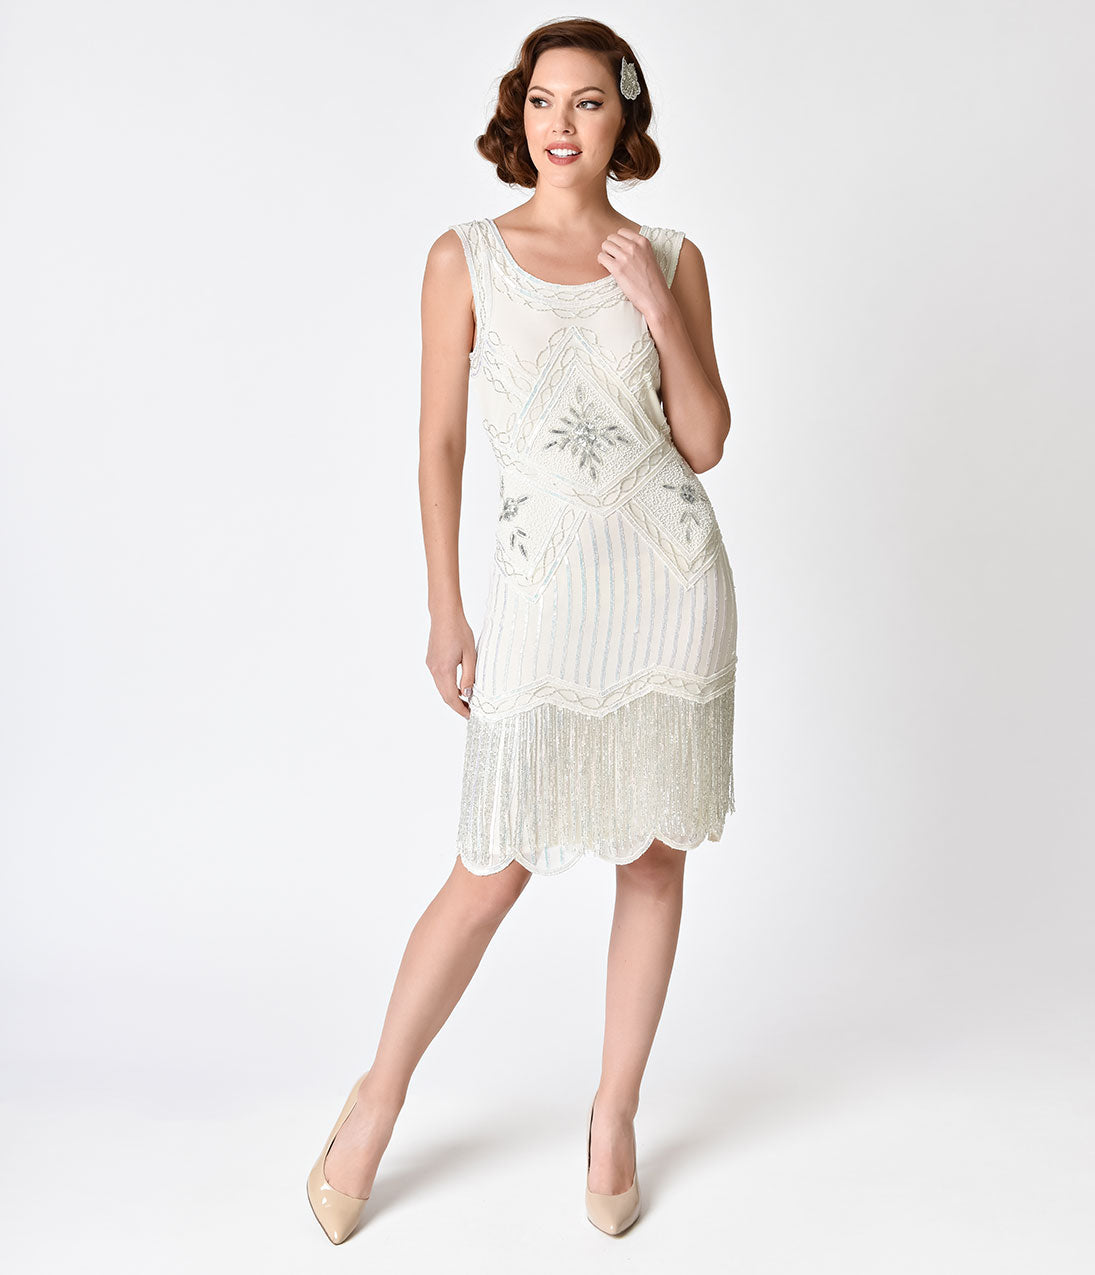 Vintage Inspired Wedding Dress | Vintage Style Wedding Dresses 1920s Beaded Ines Cocktail Dress $96.00 AT vintagedancer.com